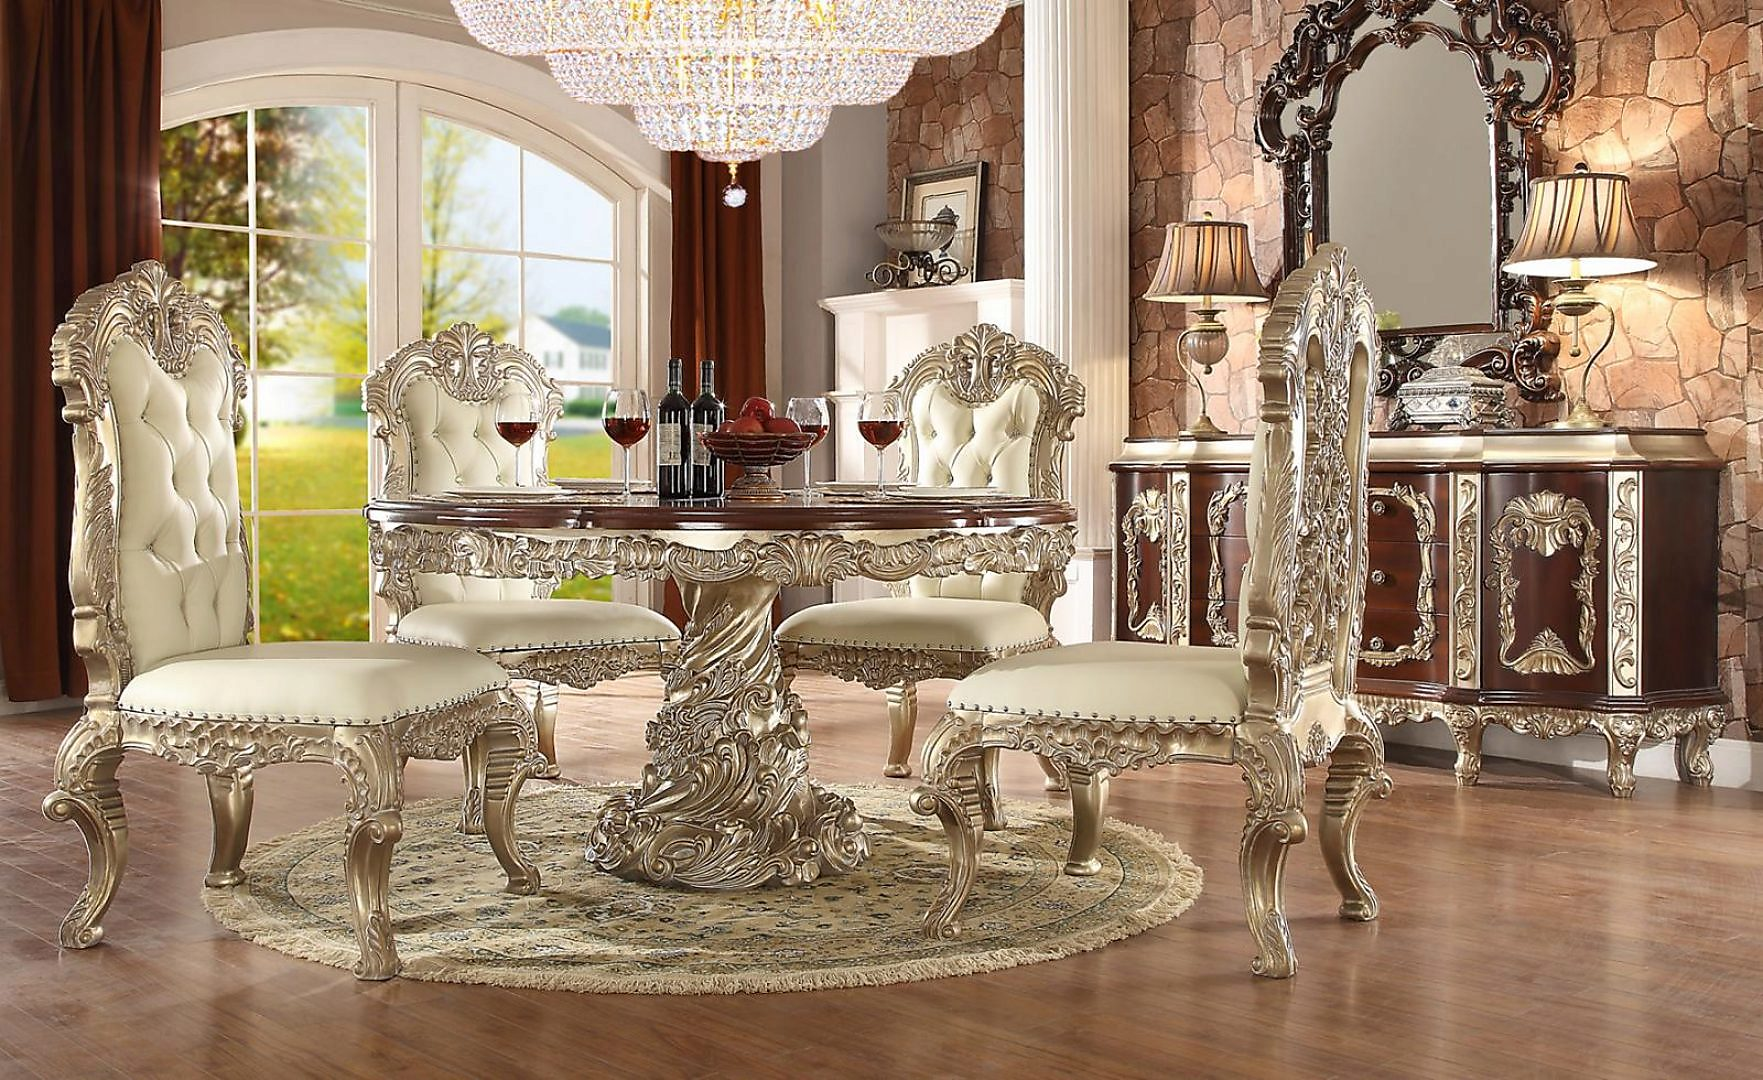 Traditional Royal HD-8017 Dining Table Set 7 Pcs by Homey Design